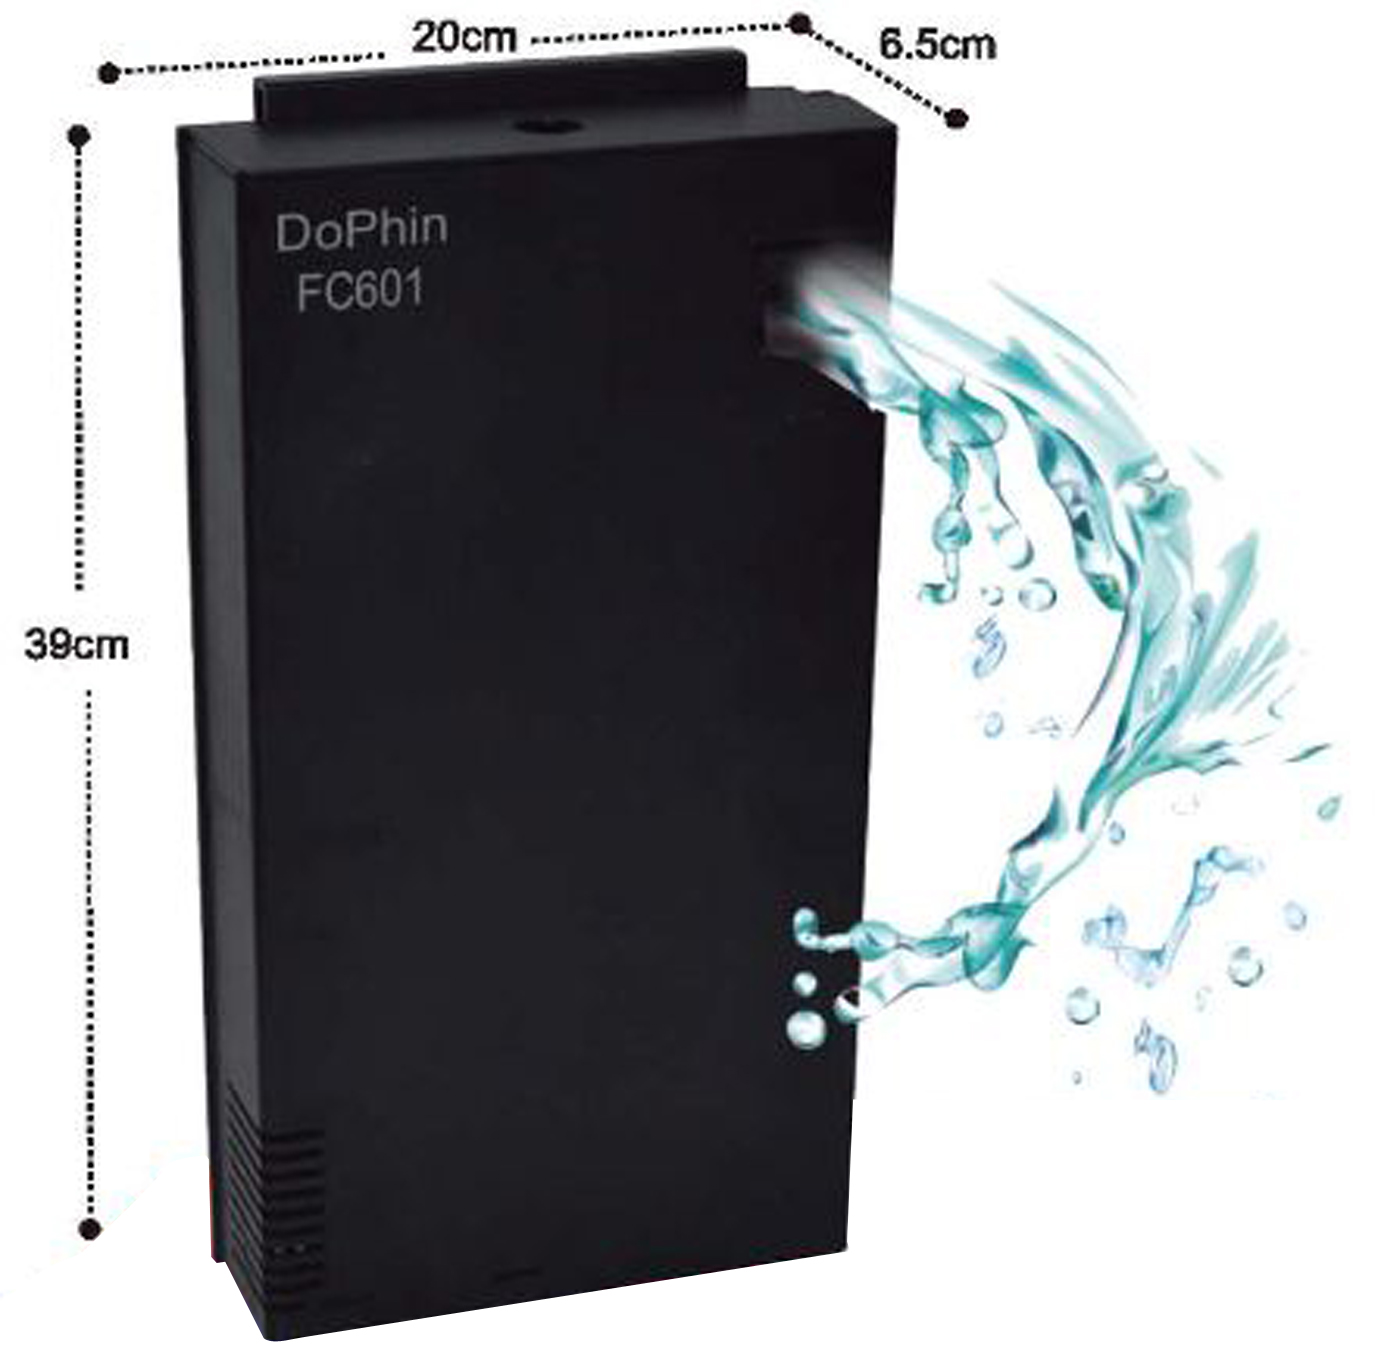 Dophin FC601 Filter box